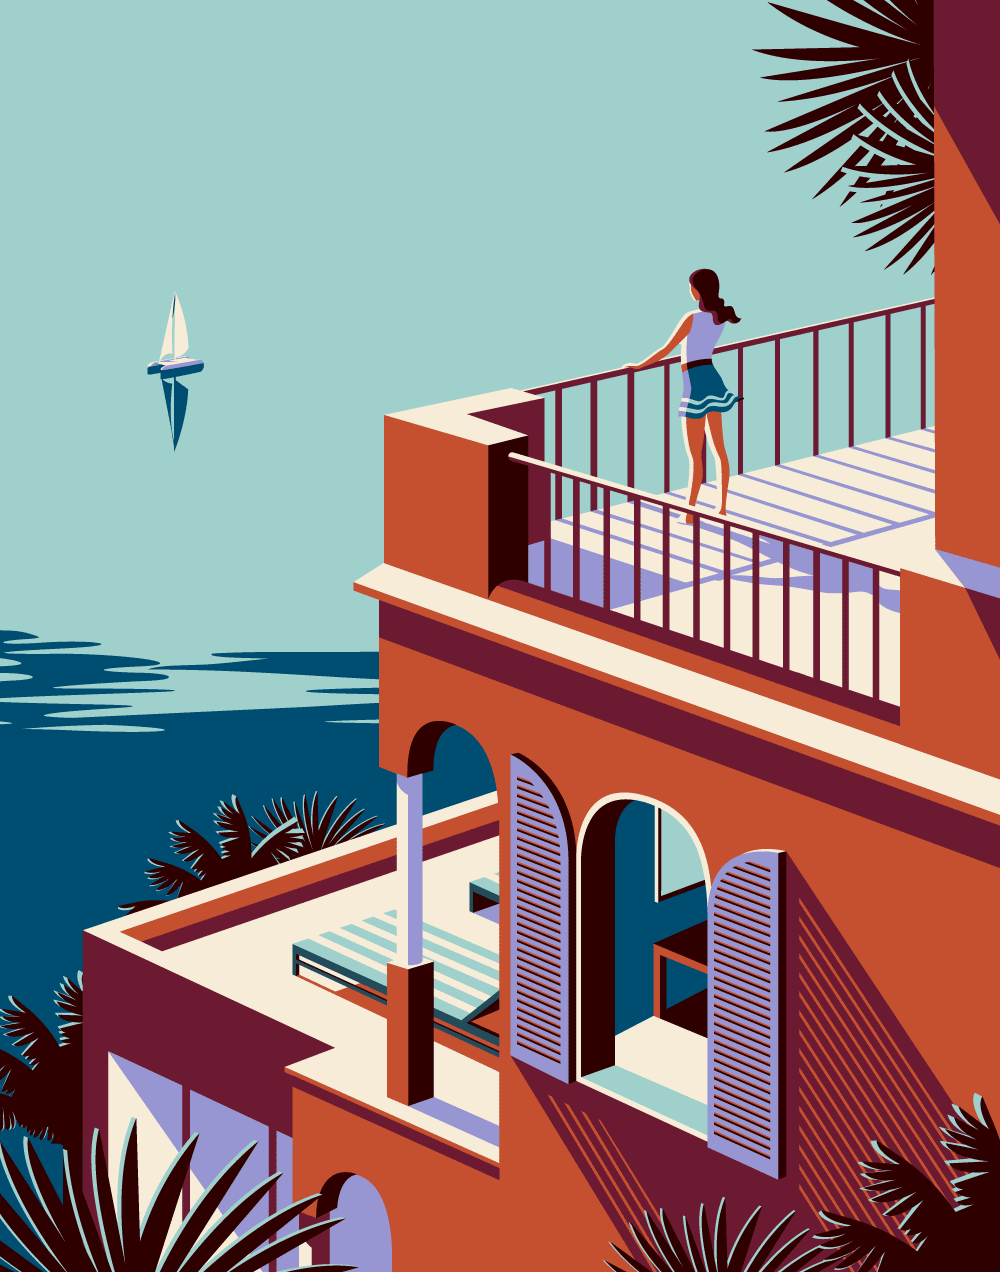 """Illustrations for Kuoni by Malika Favre """"Series of travel illustrations for Kuoni France 2016 brochure, art direction by Altavia."""" Malika Favre is a French artist based in London. Her bold, minimal style – often described as Pop Art meets OpArt – is..."""